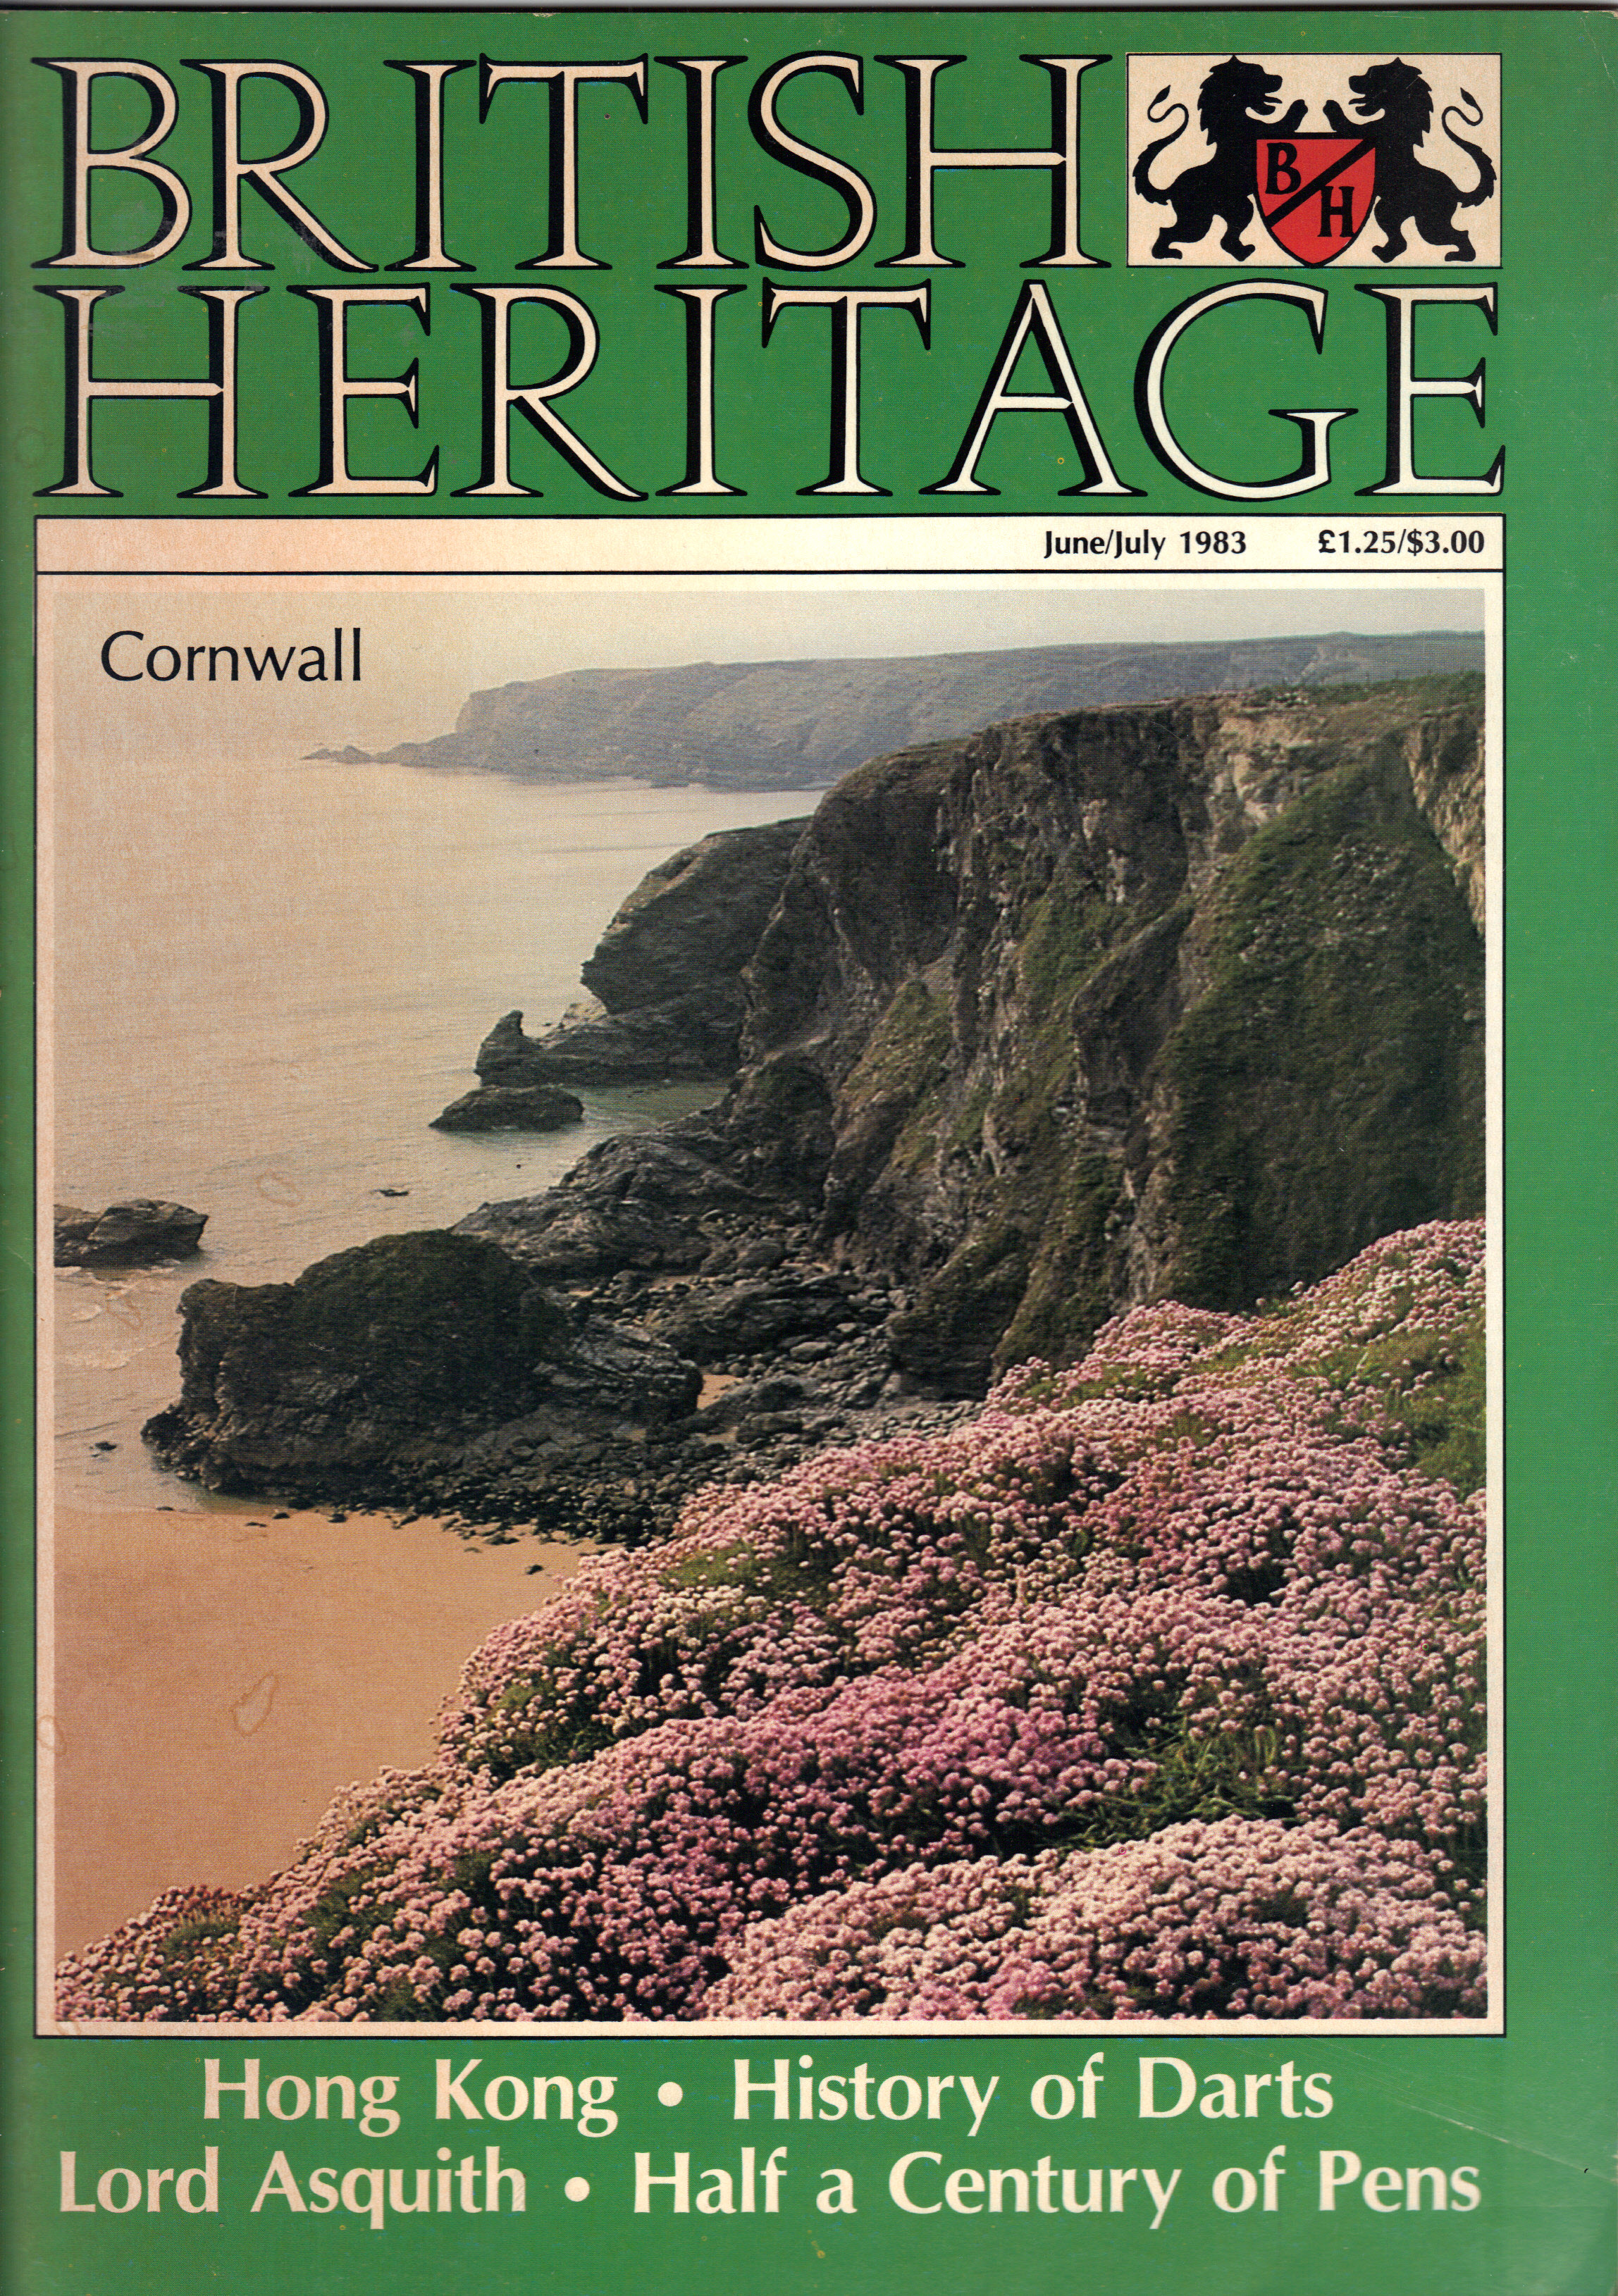 Image for BRITISH HERITAGE June/July 1983